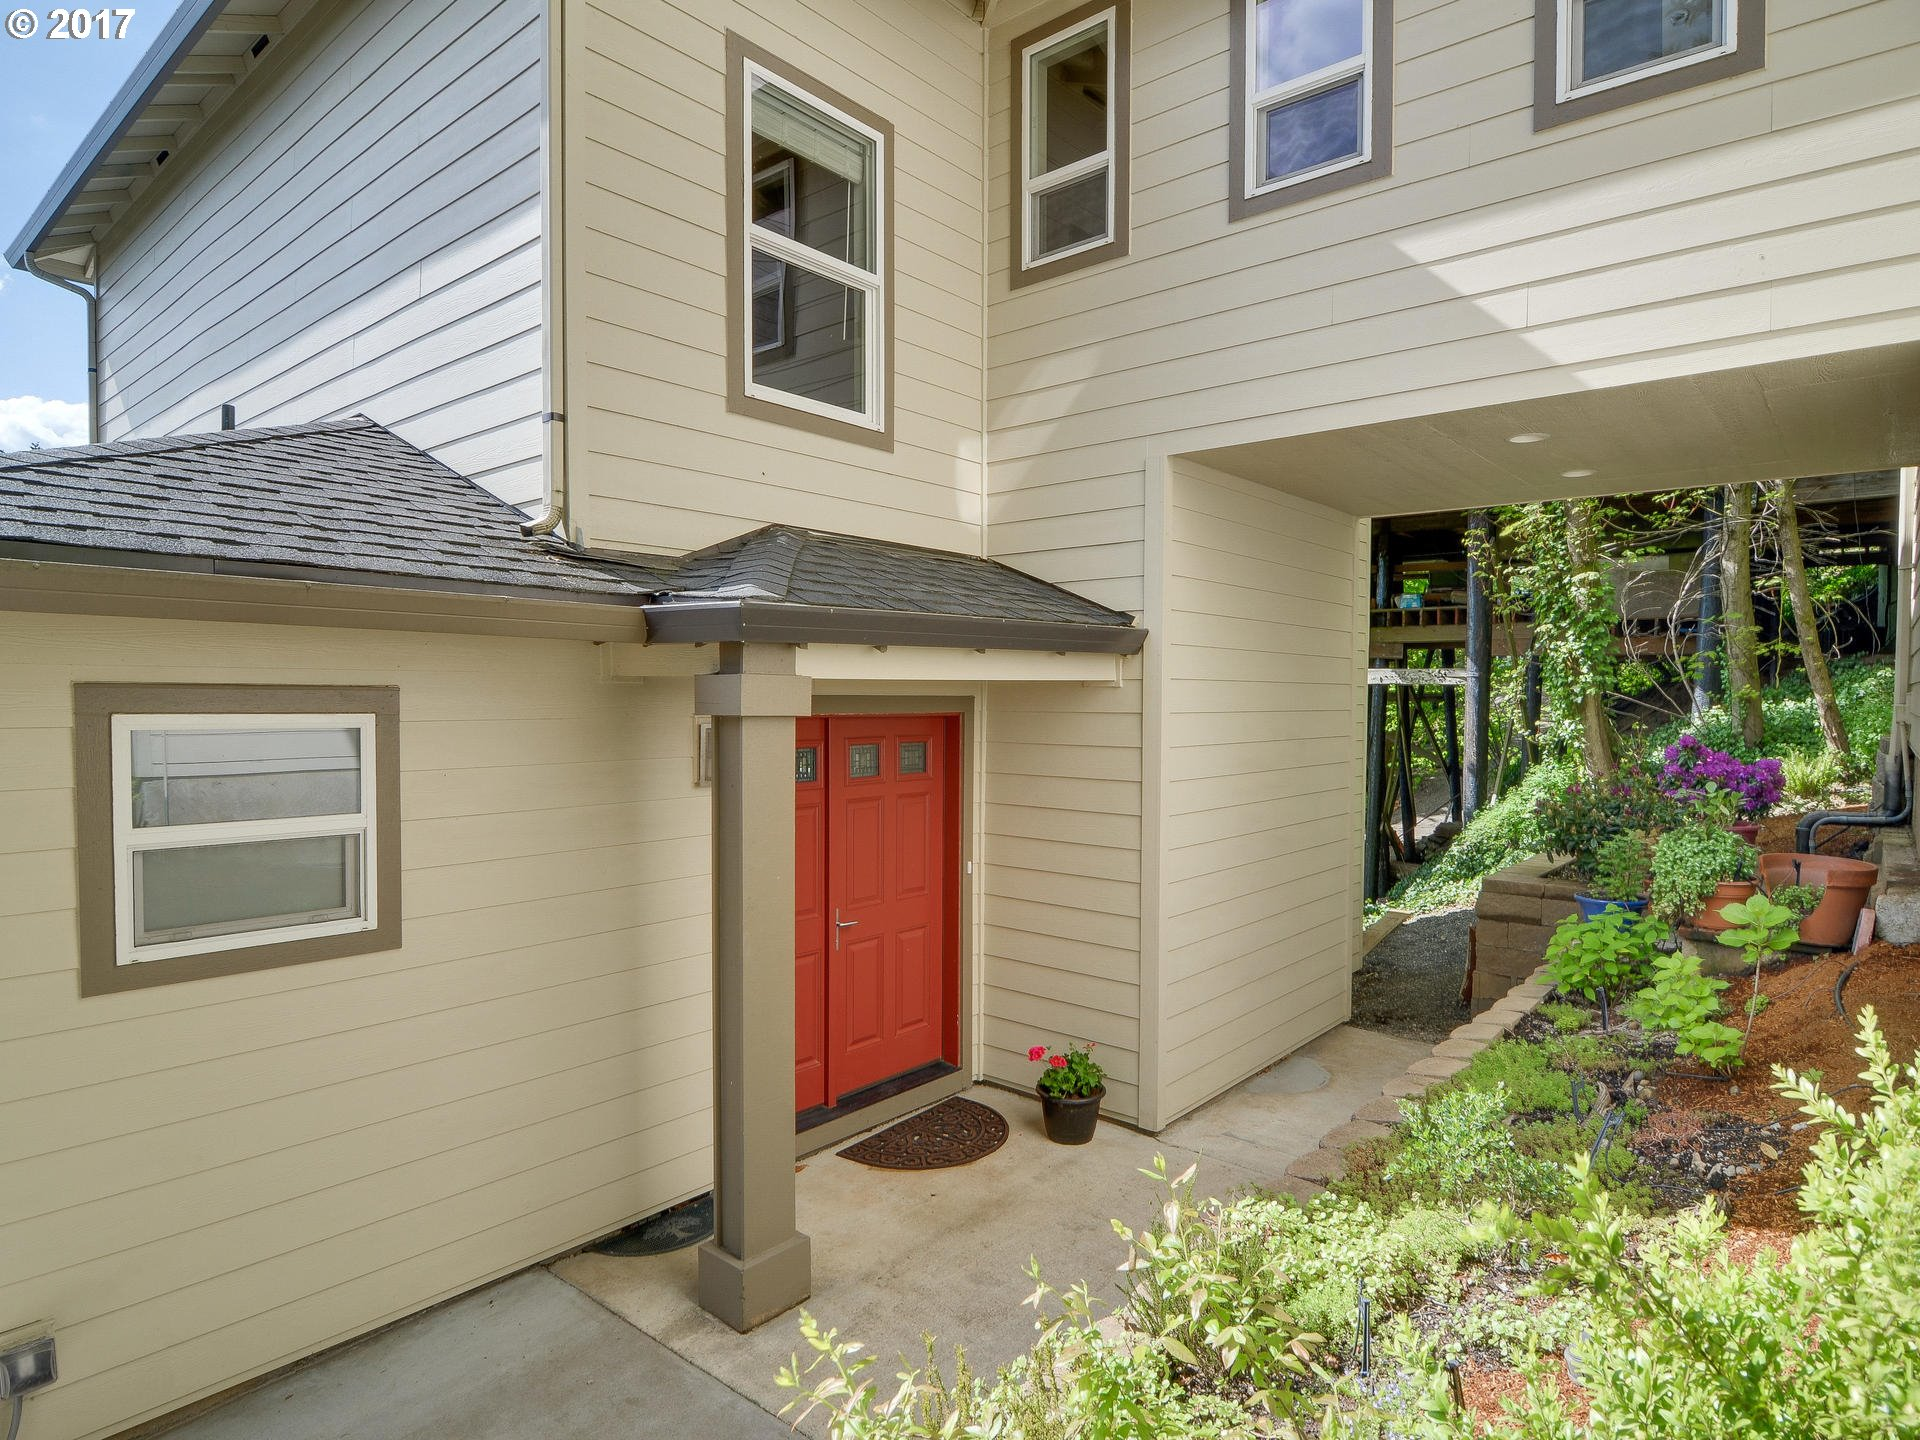 3356 SW FAIRMOUNT BLVD Portland, OR 97239 - MLS #: 17611251